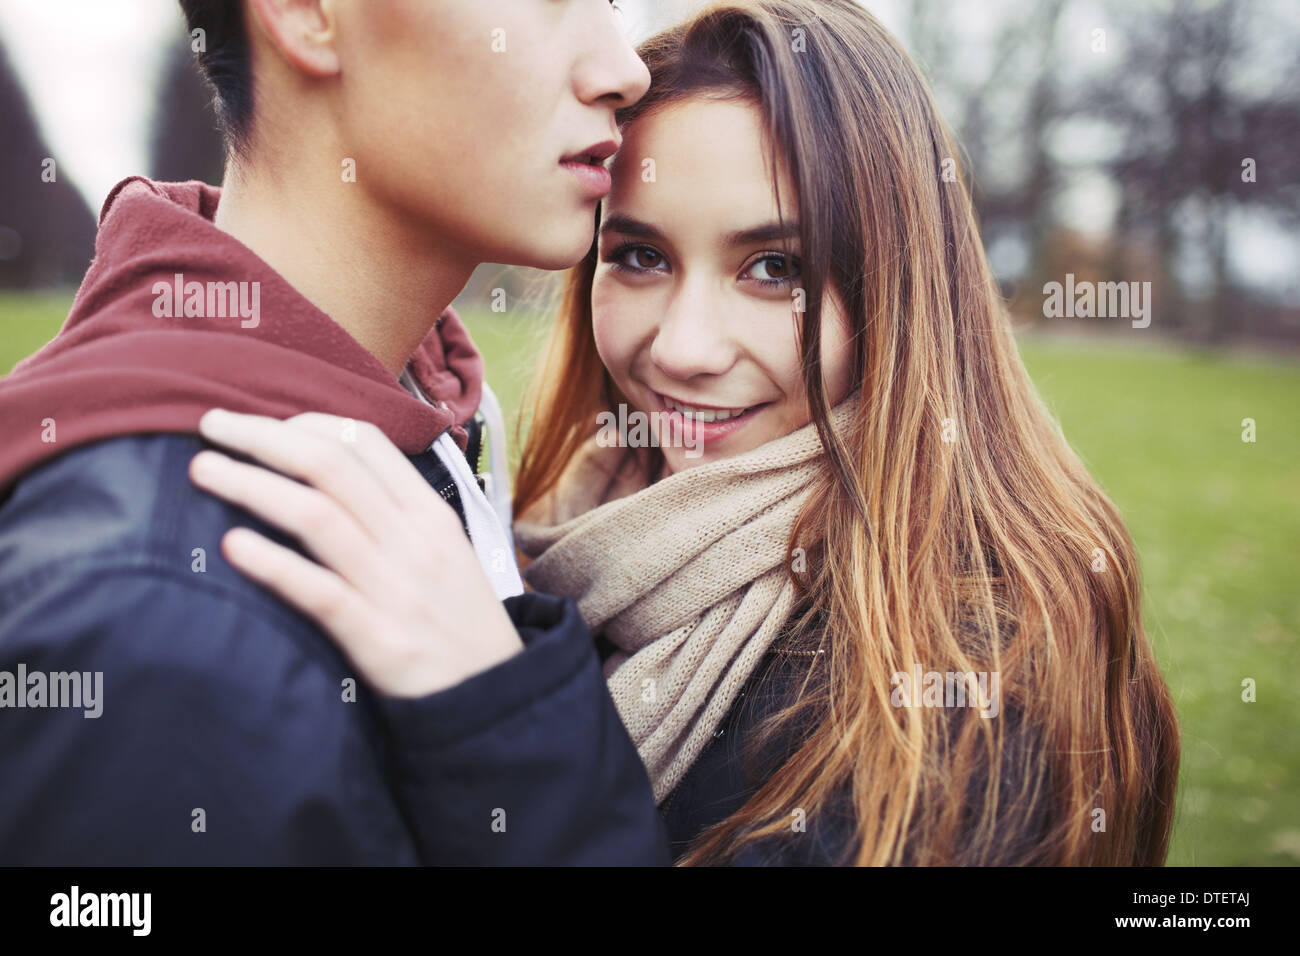 Beautiful teenage girl with her boyfriend in park. Mixed race young couple in love outdoors. - Stock Image